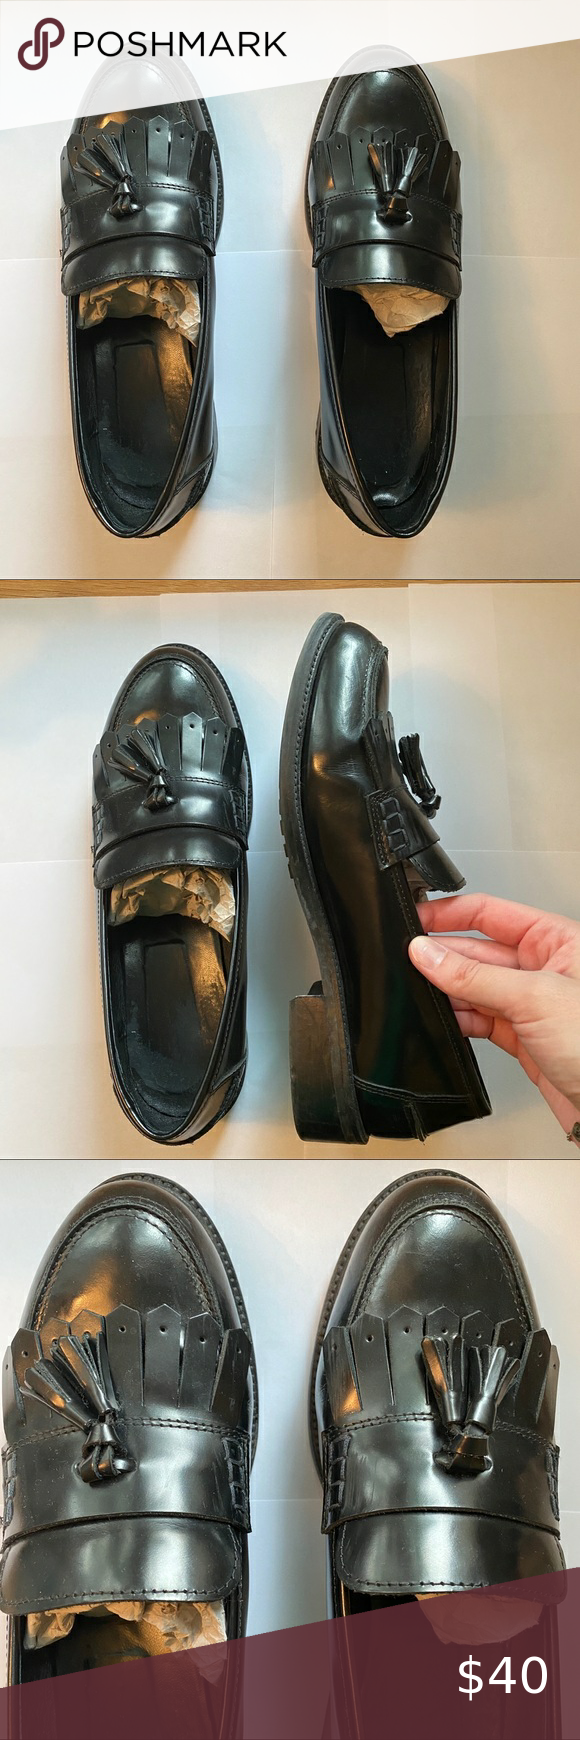 Penny loafers, Loafers, Bata shoes